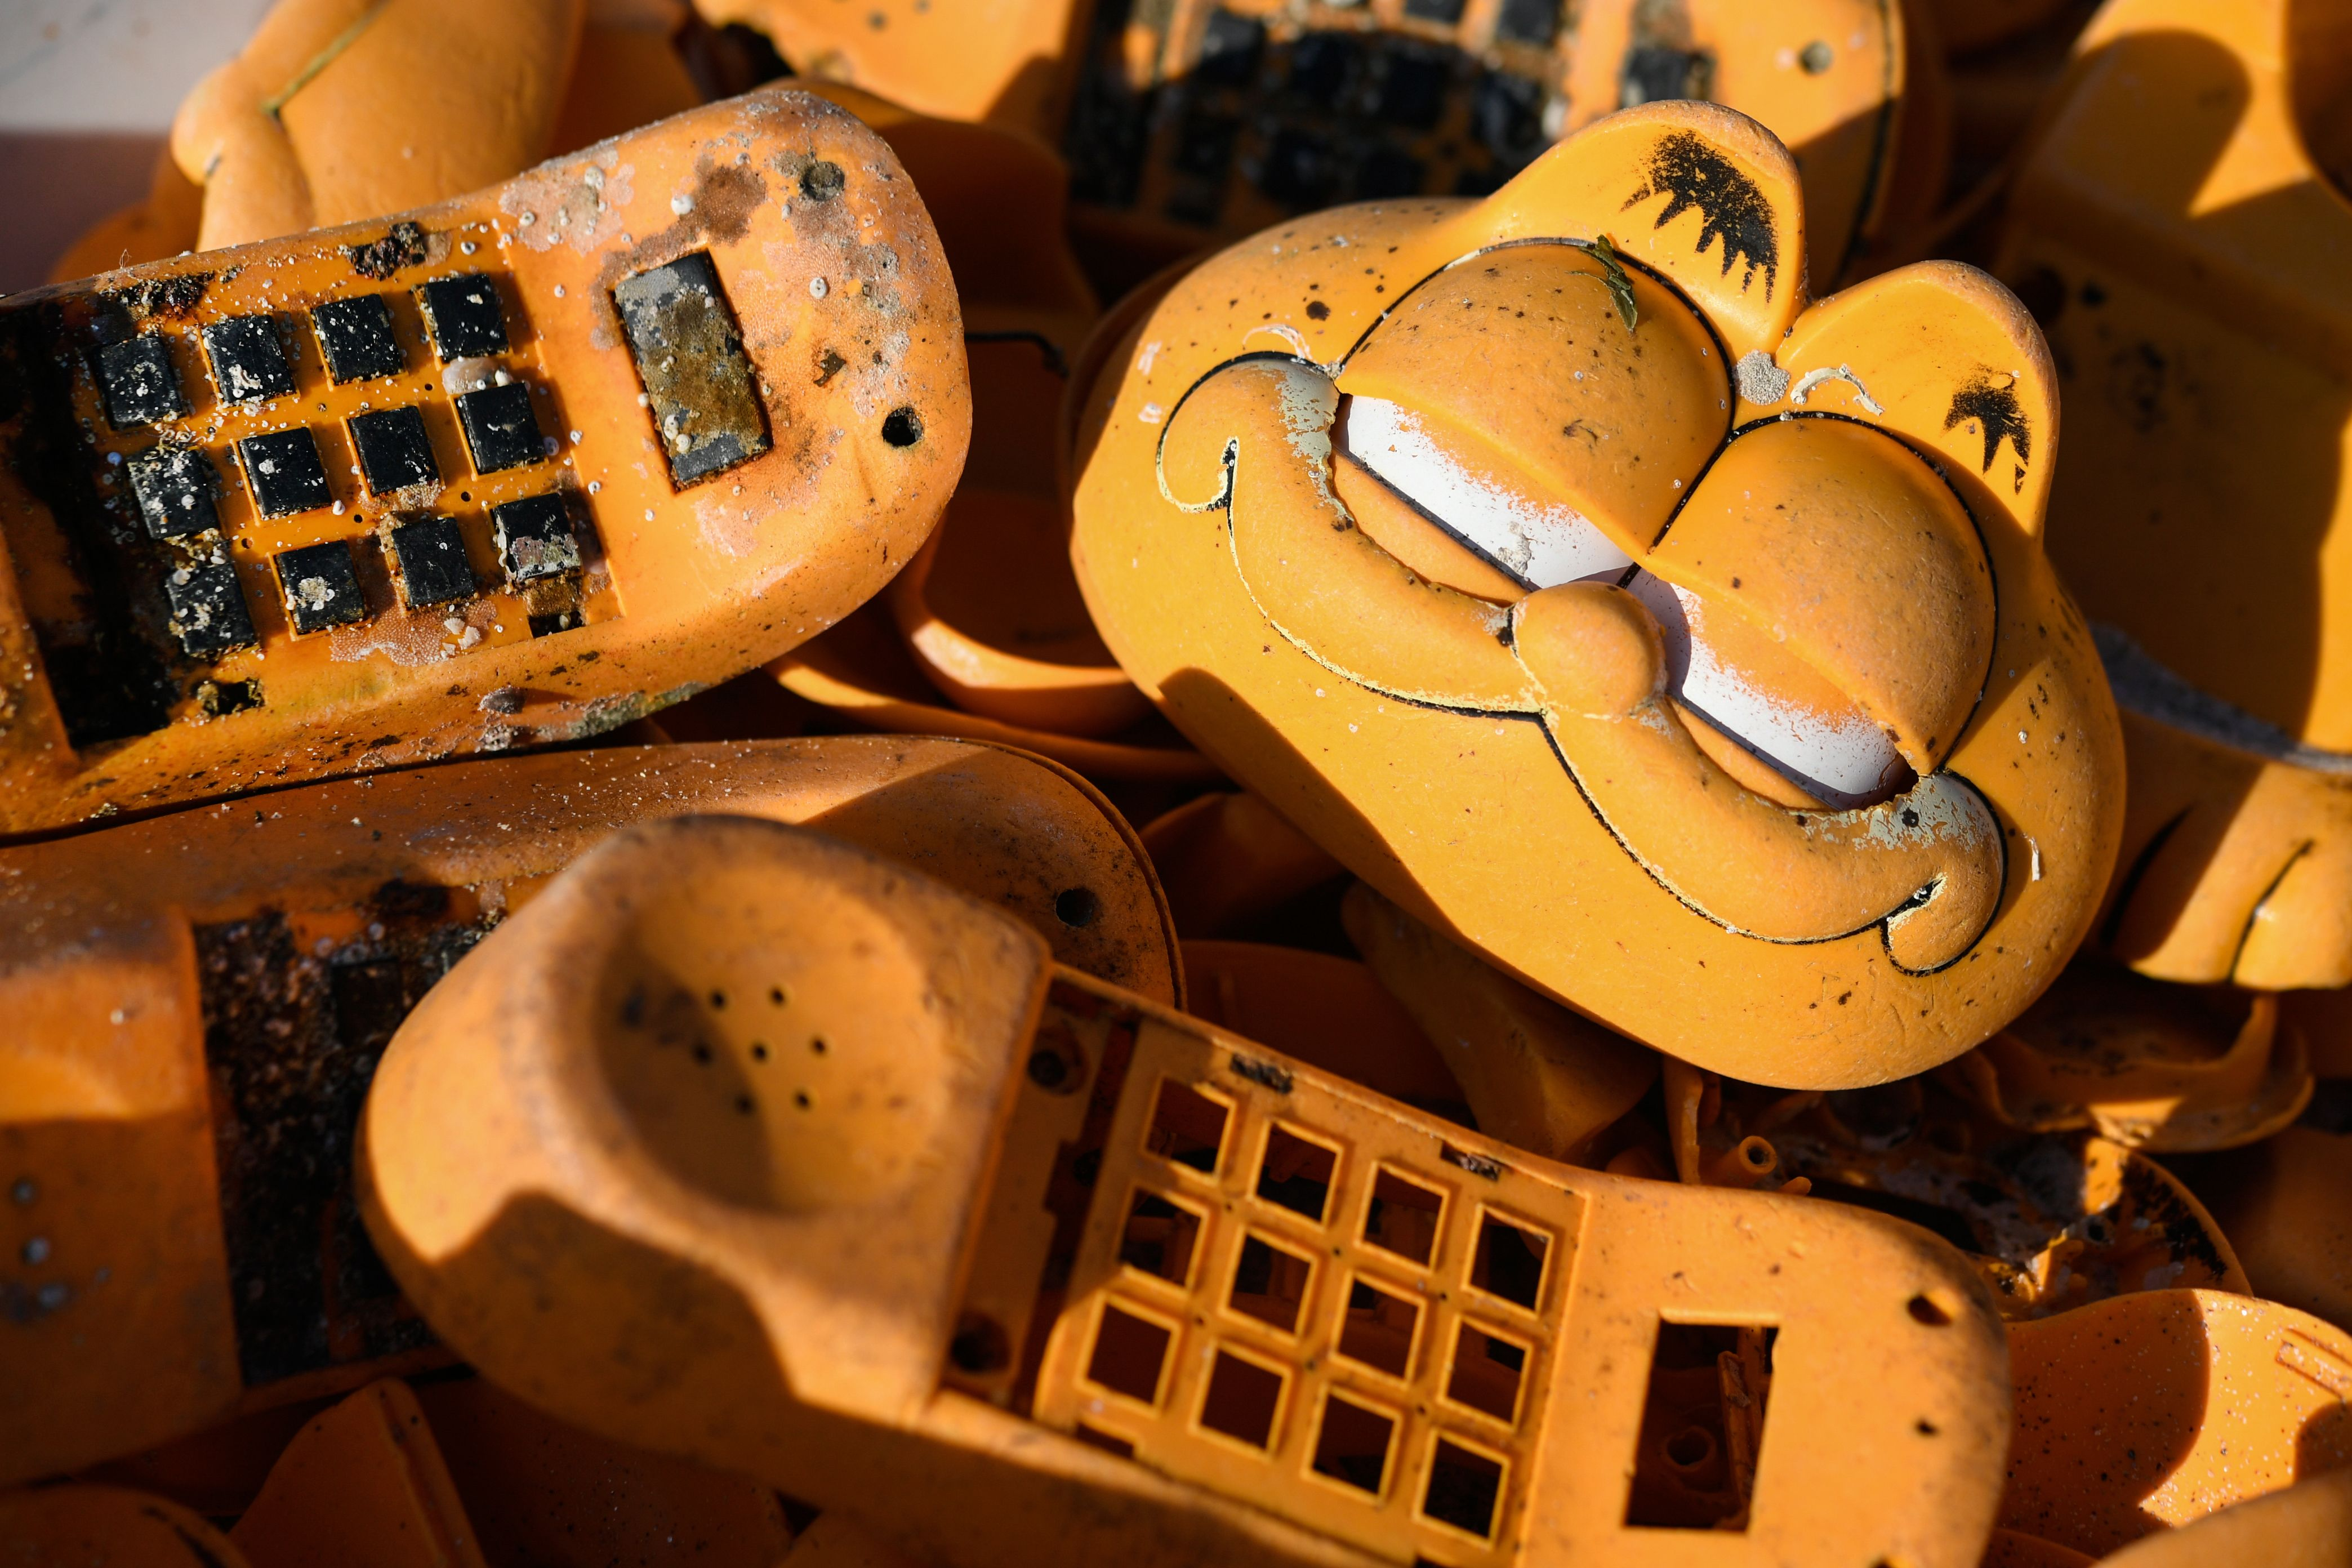 'Garfield' phones are displayed on the beach on March 28, 2019 in Plouarzel, western France. (Photo by Fred TANNEAU / AFP) (Photo credit should read FRED TANNEAU/AFP/Getty Images)